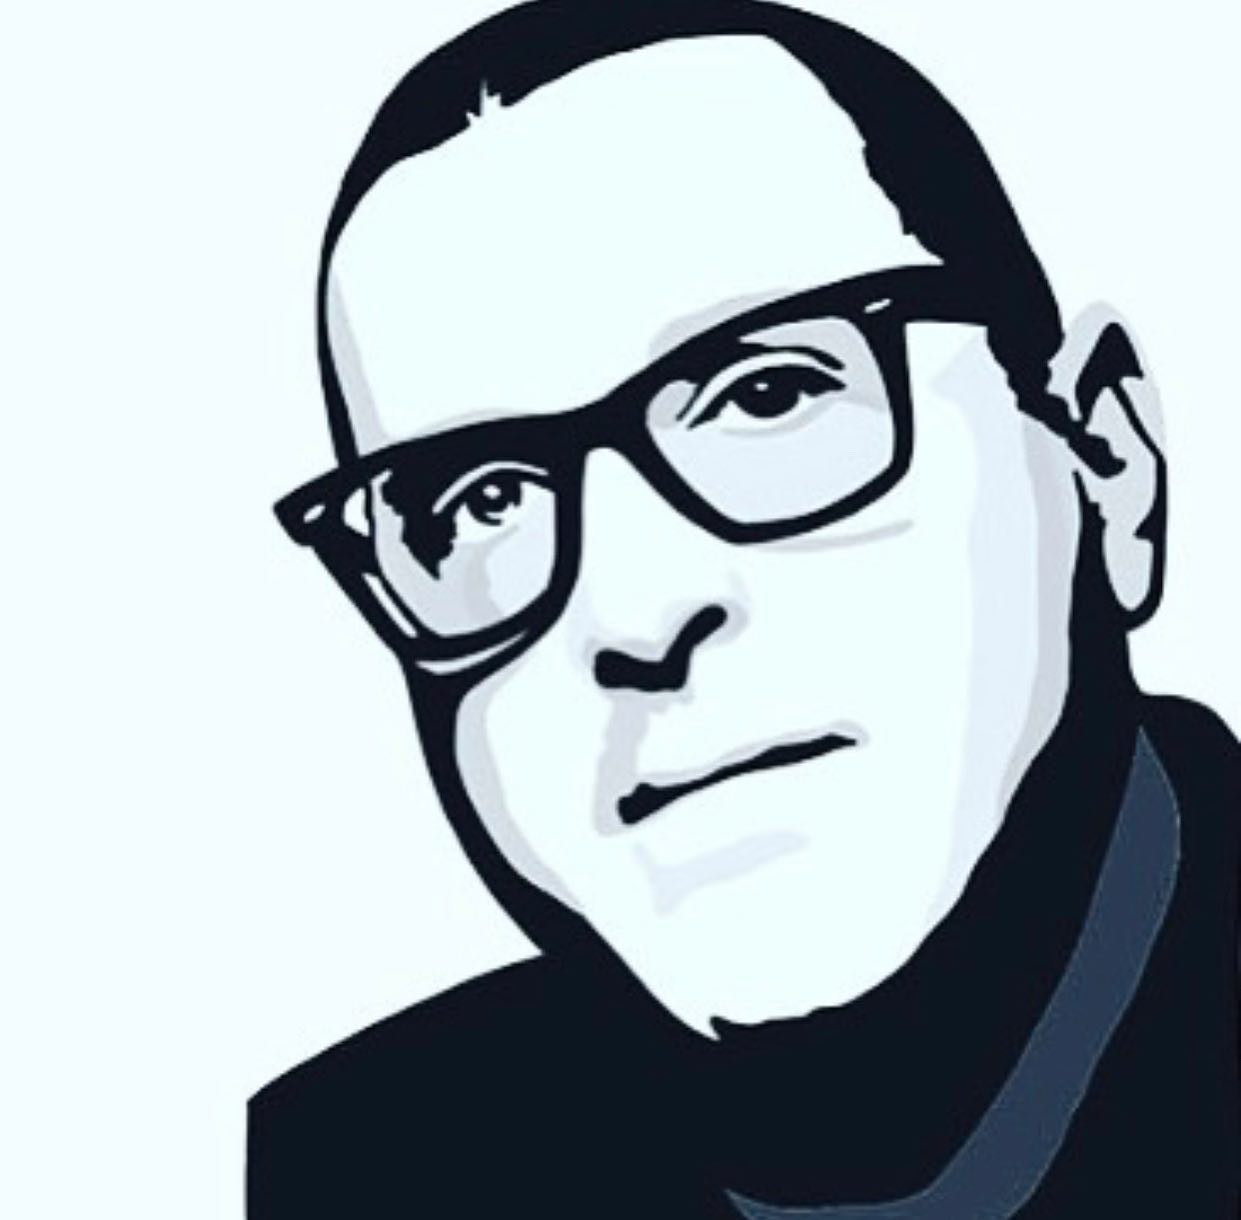 The groundbreaking rapper MC Serch calls in to talk with Tom about the early days of hip hop in NYC, how his iconic rap group 3rd Bass changed the game, and marshmallows... Just listen.  Found everywhere you subscribe to podcasts.  Spotify link in BIO  LINK IN BIO!!!